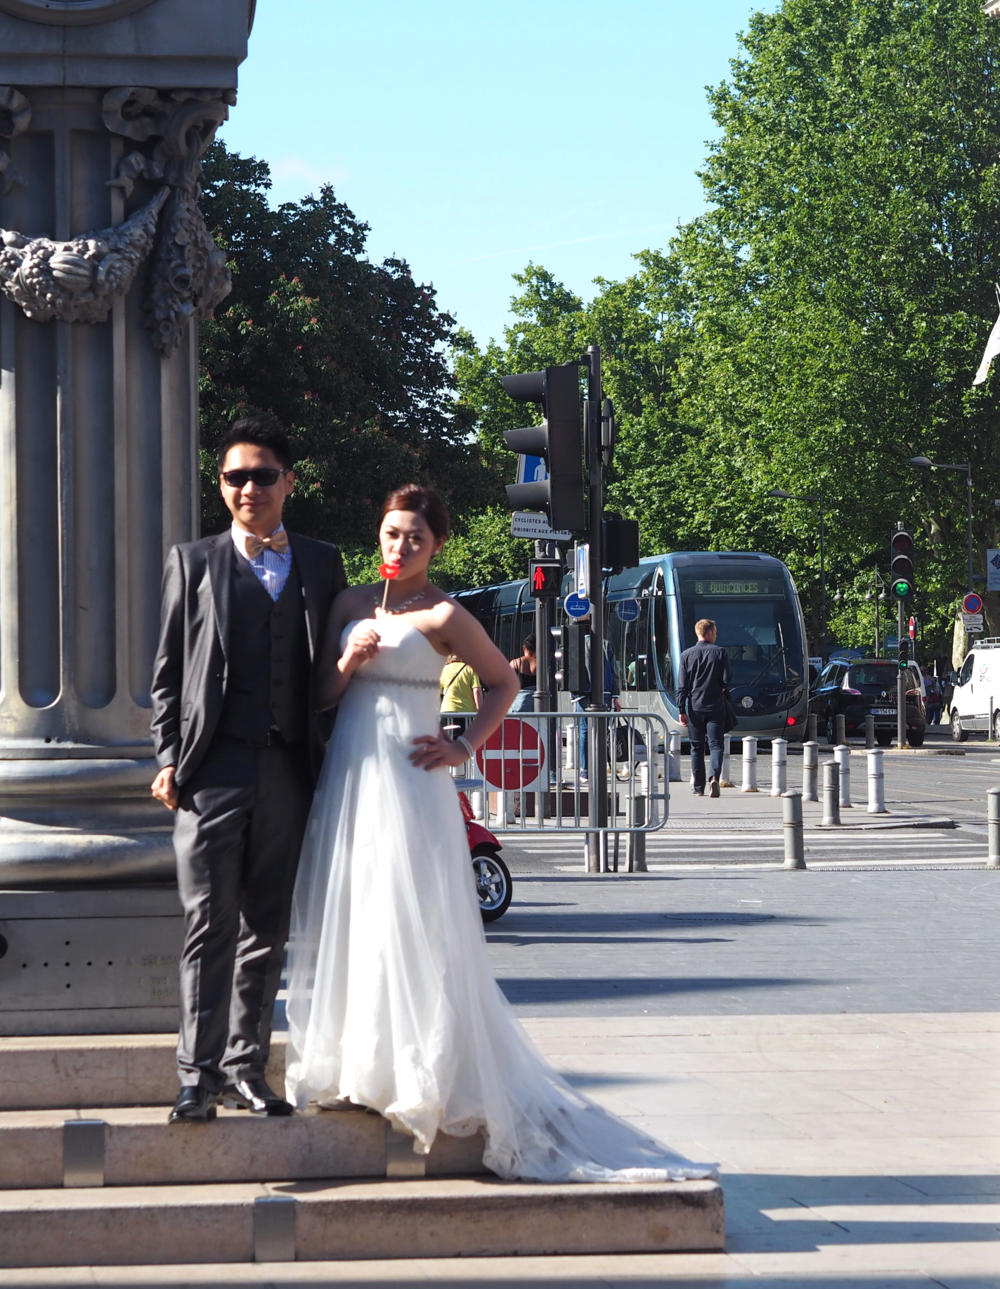 Wedding in Bordeaux. / Bordo'dagelin -damat da gorduk.